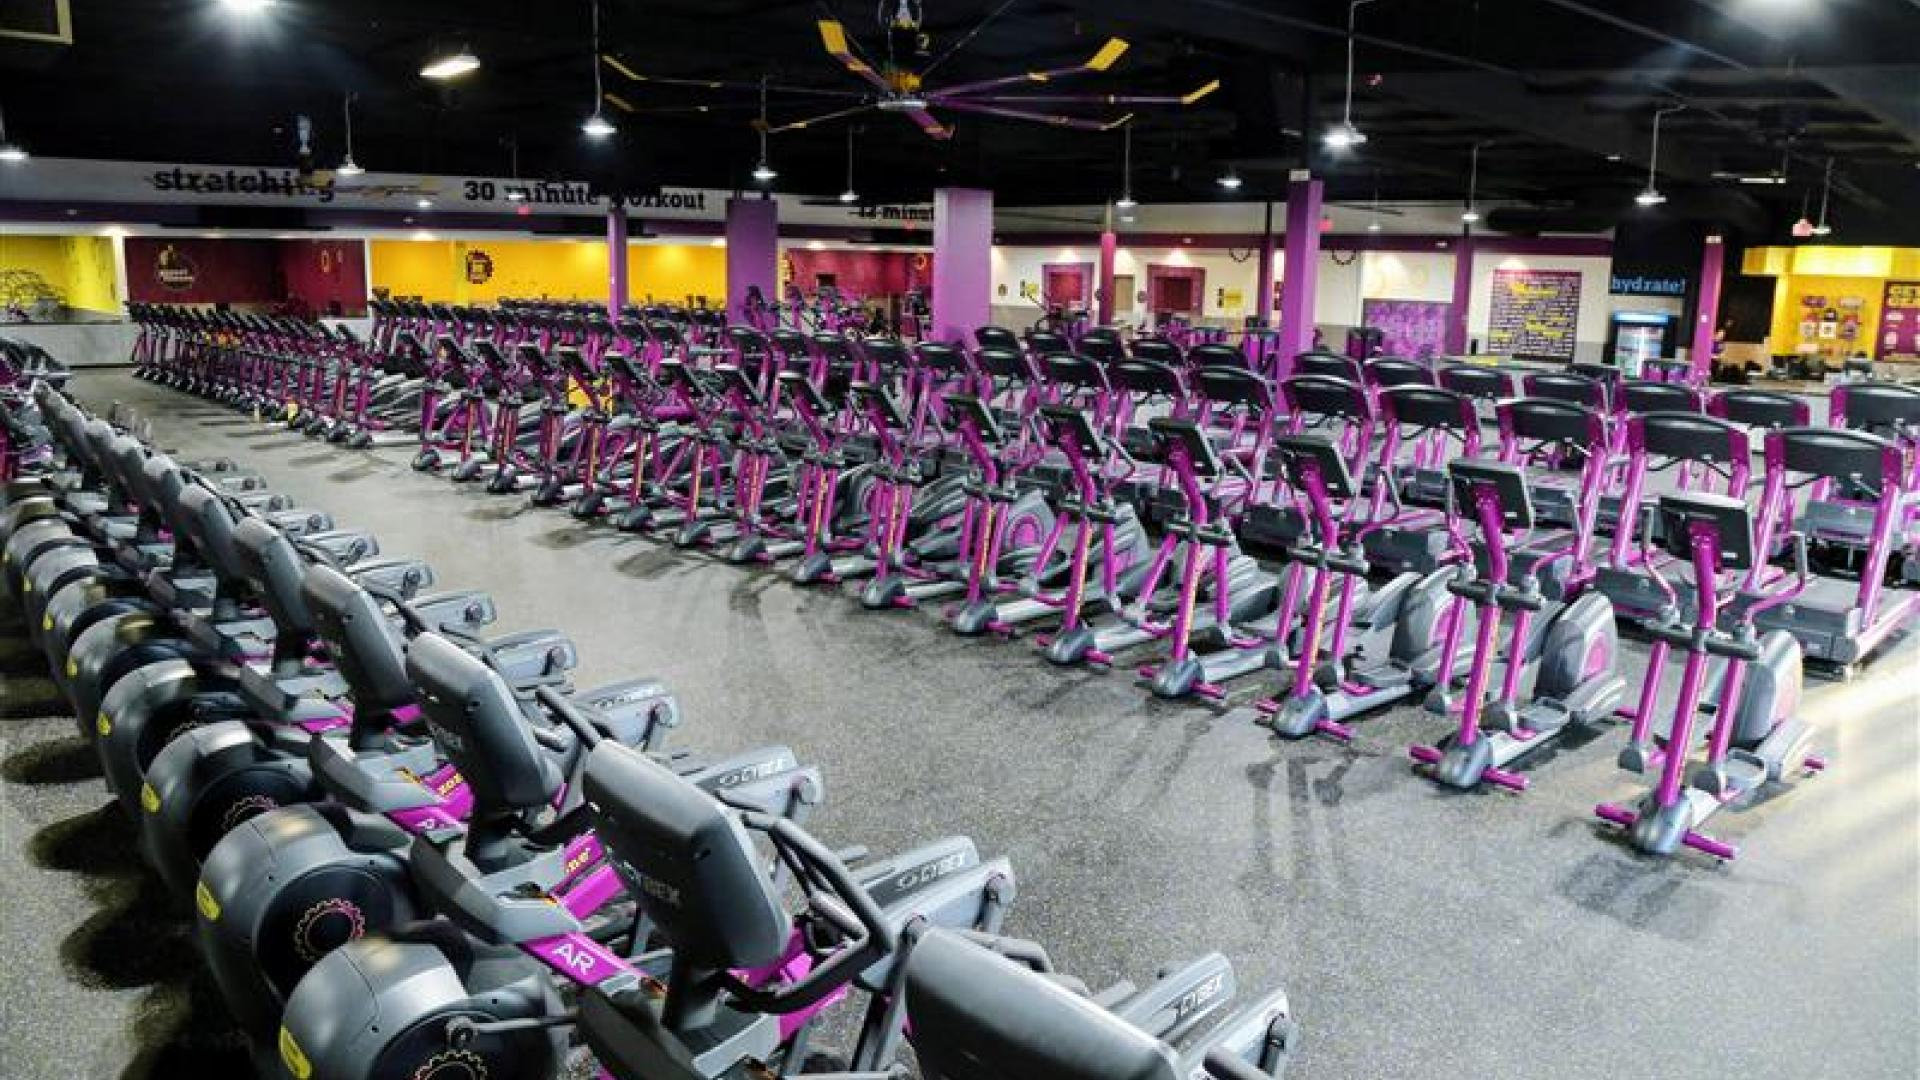 gyms in visalia ca | anotherhackedlife.com